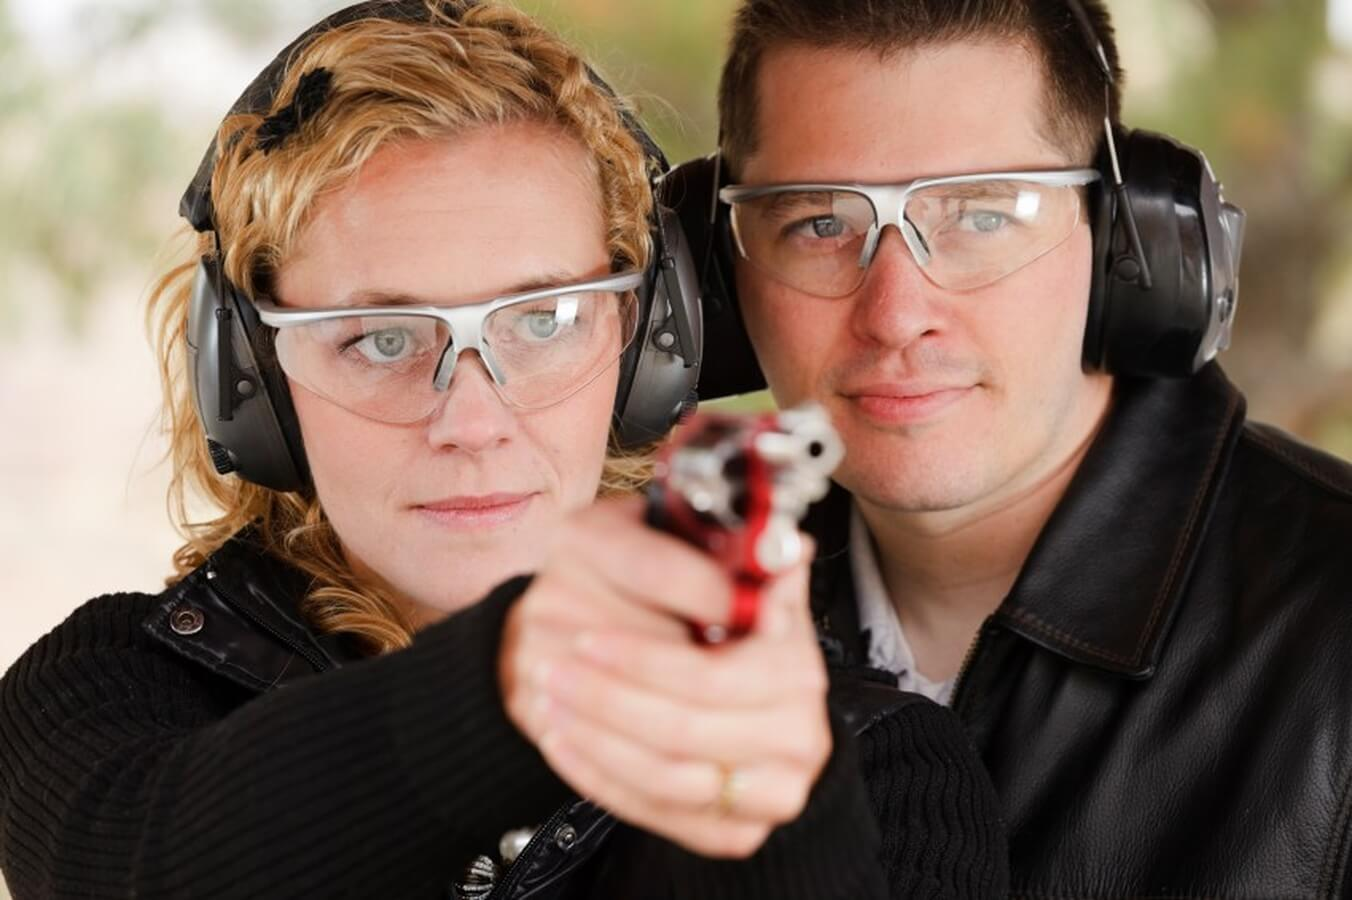 Beginner Pistol Classes